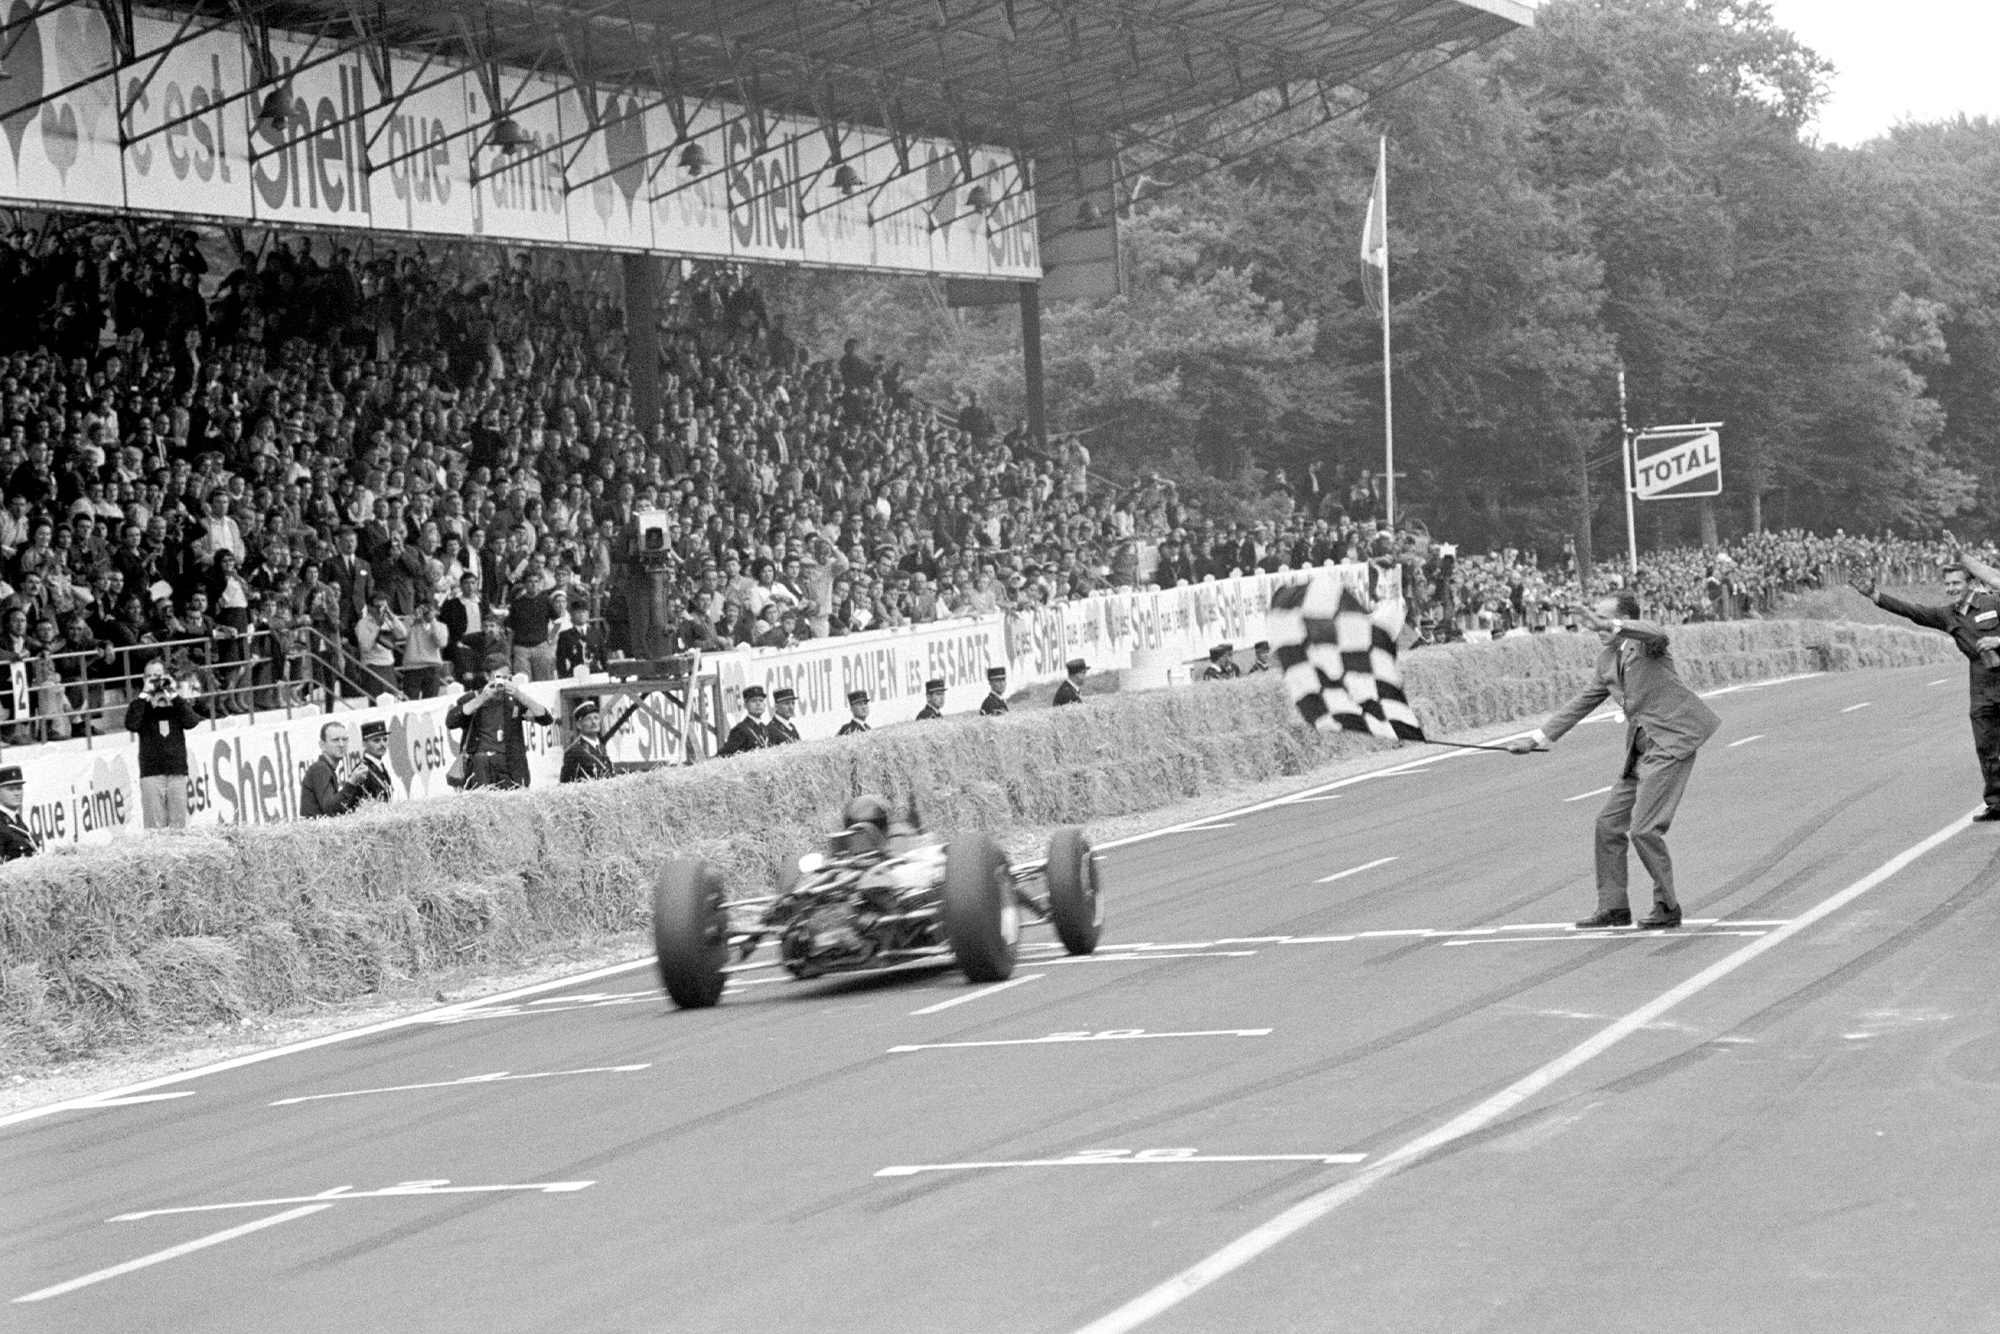 Dan Gurney takes the chequered flag in his Brabham.